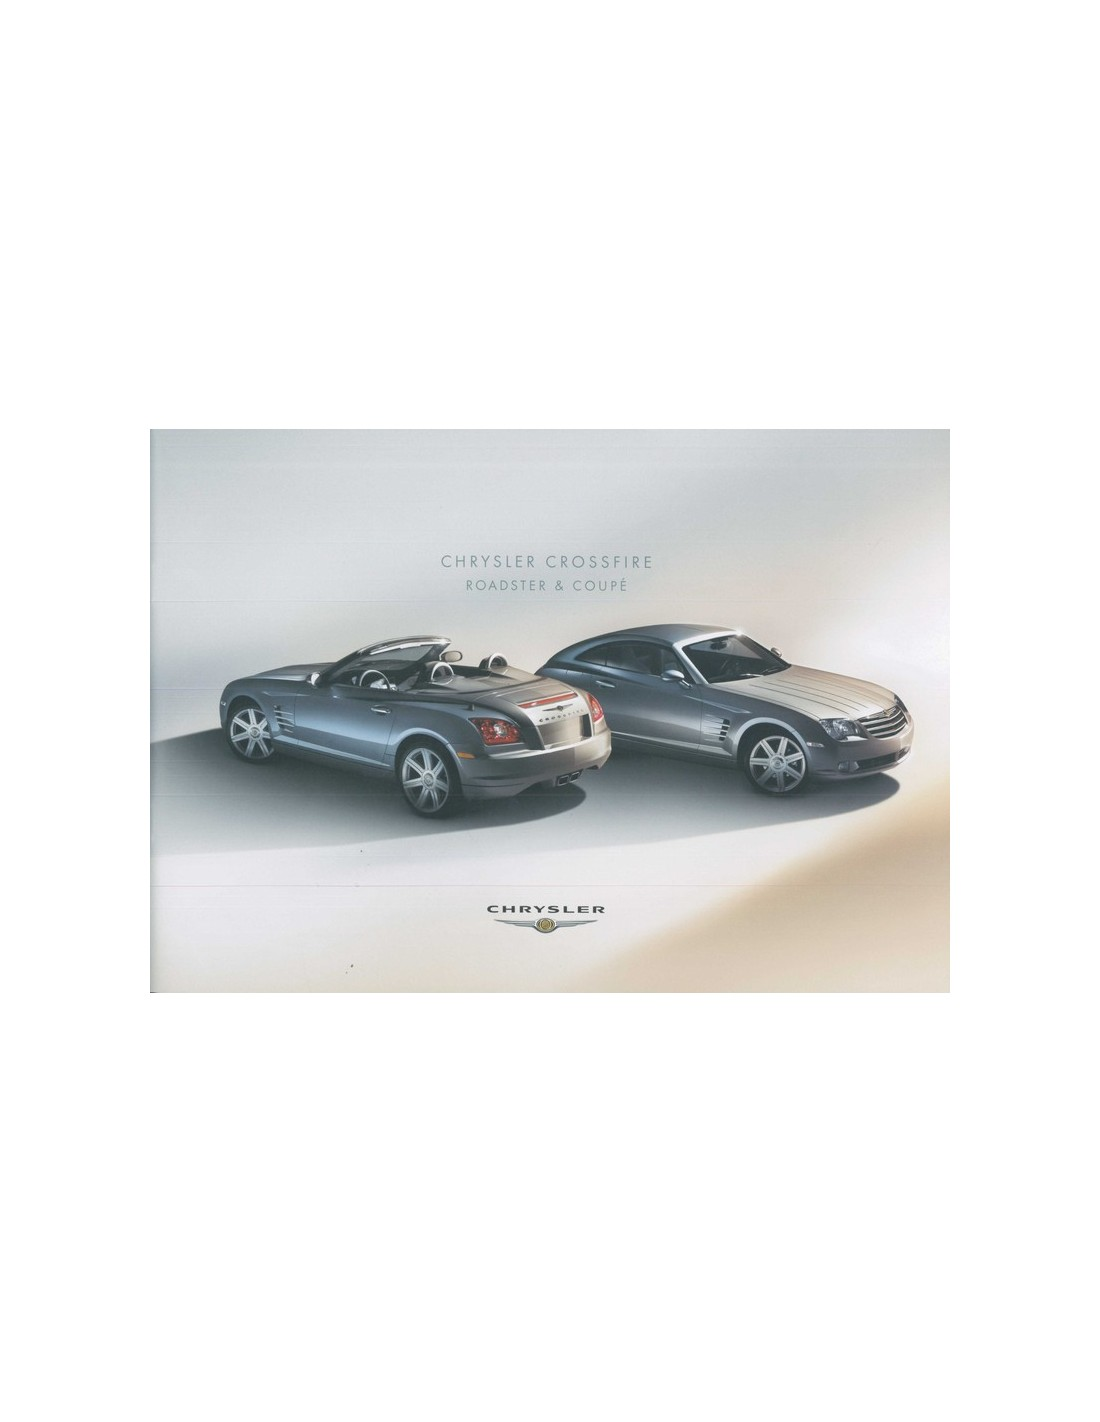 2004 CHRYSLER CROSSFIRE ROADSTER & COUPE BROCHURE GERMAN